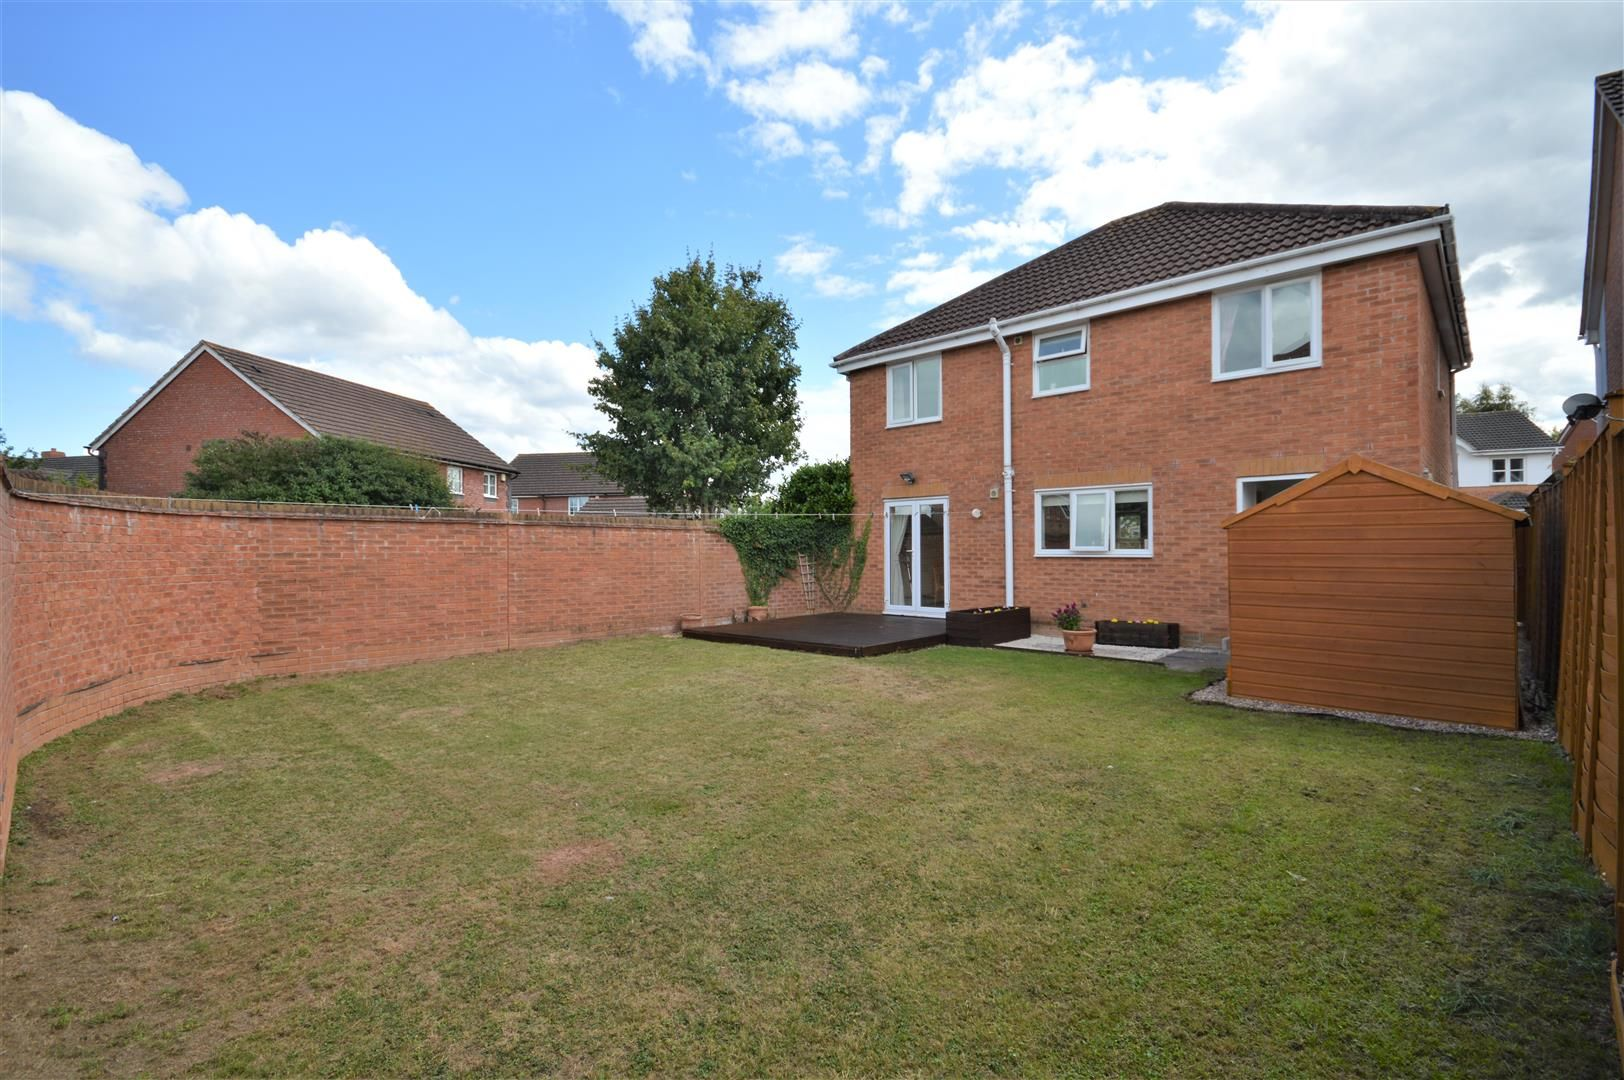 4 bed detached for sale in Belmont 6